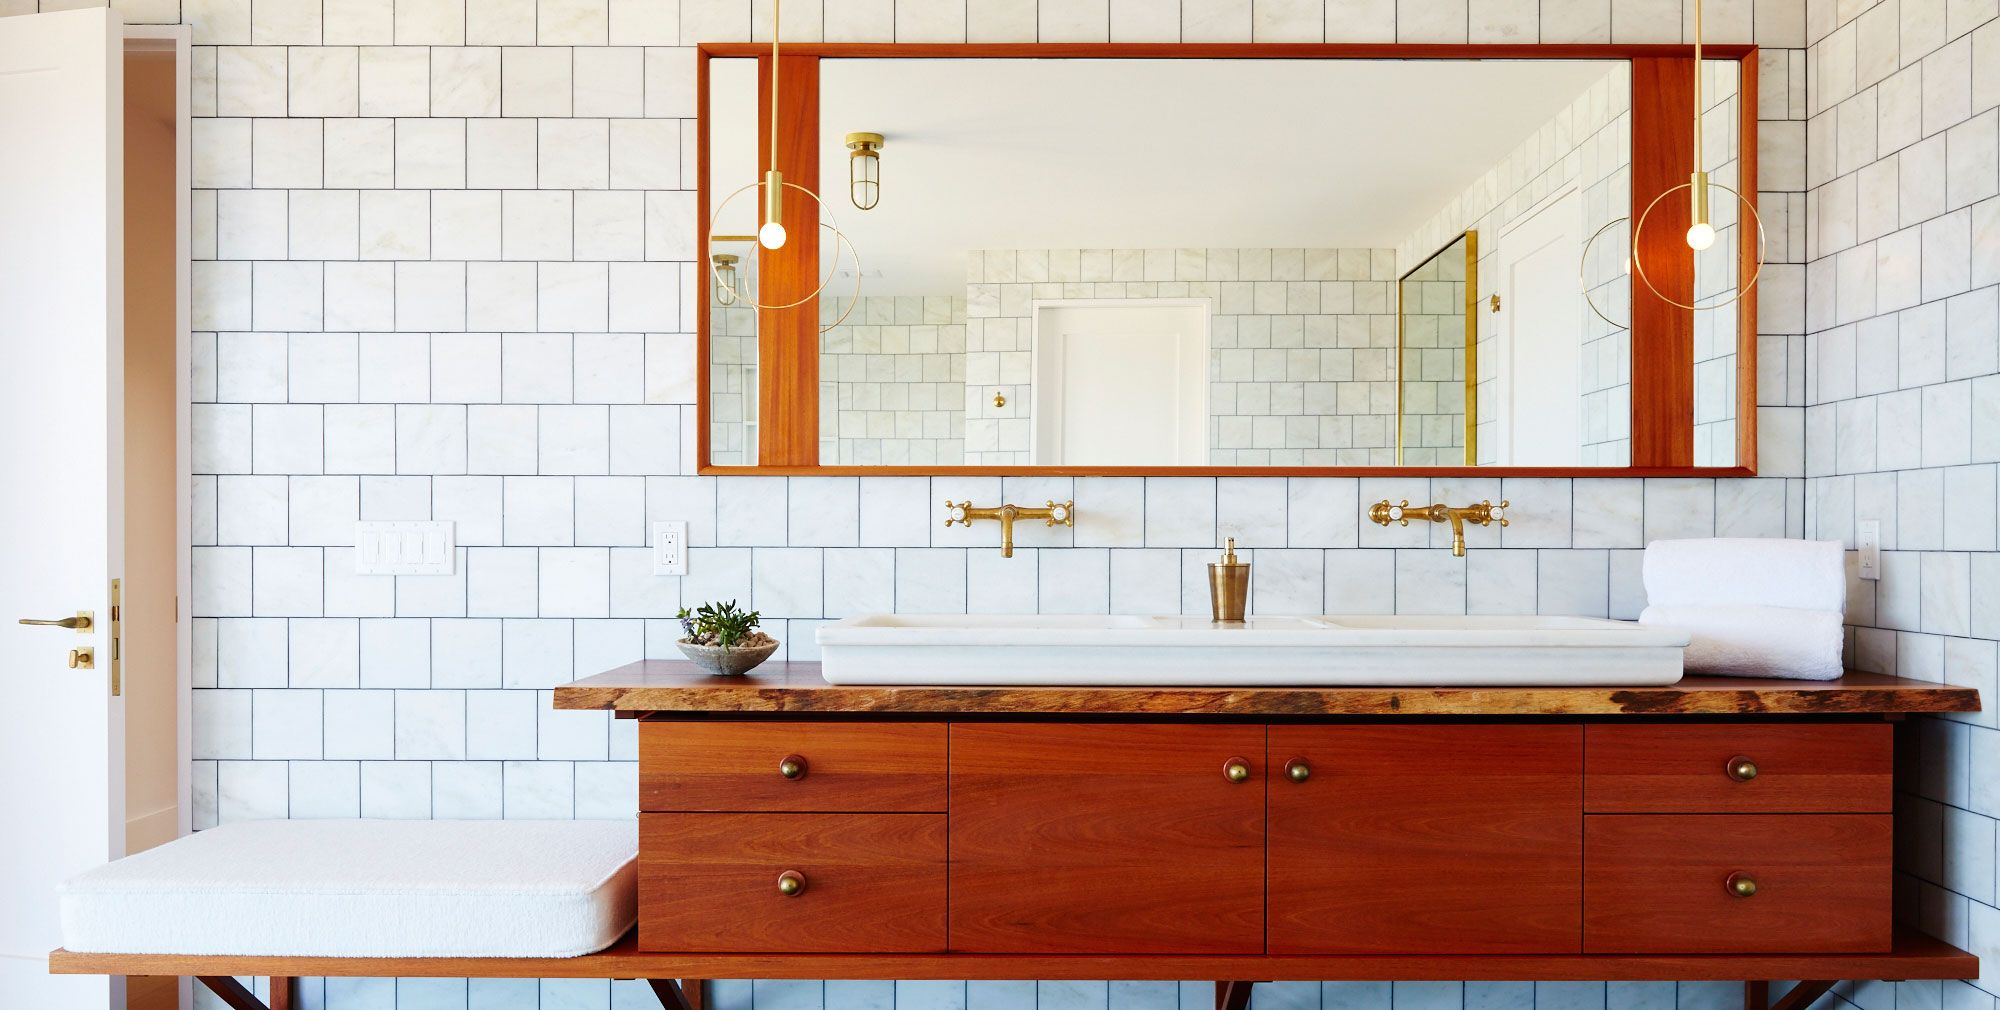 60 Bathroom Ideas We're Legit Obsessed With